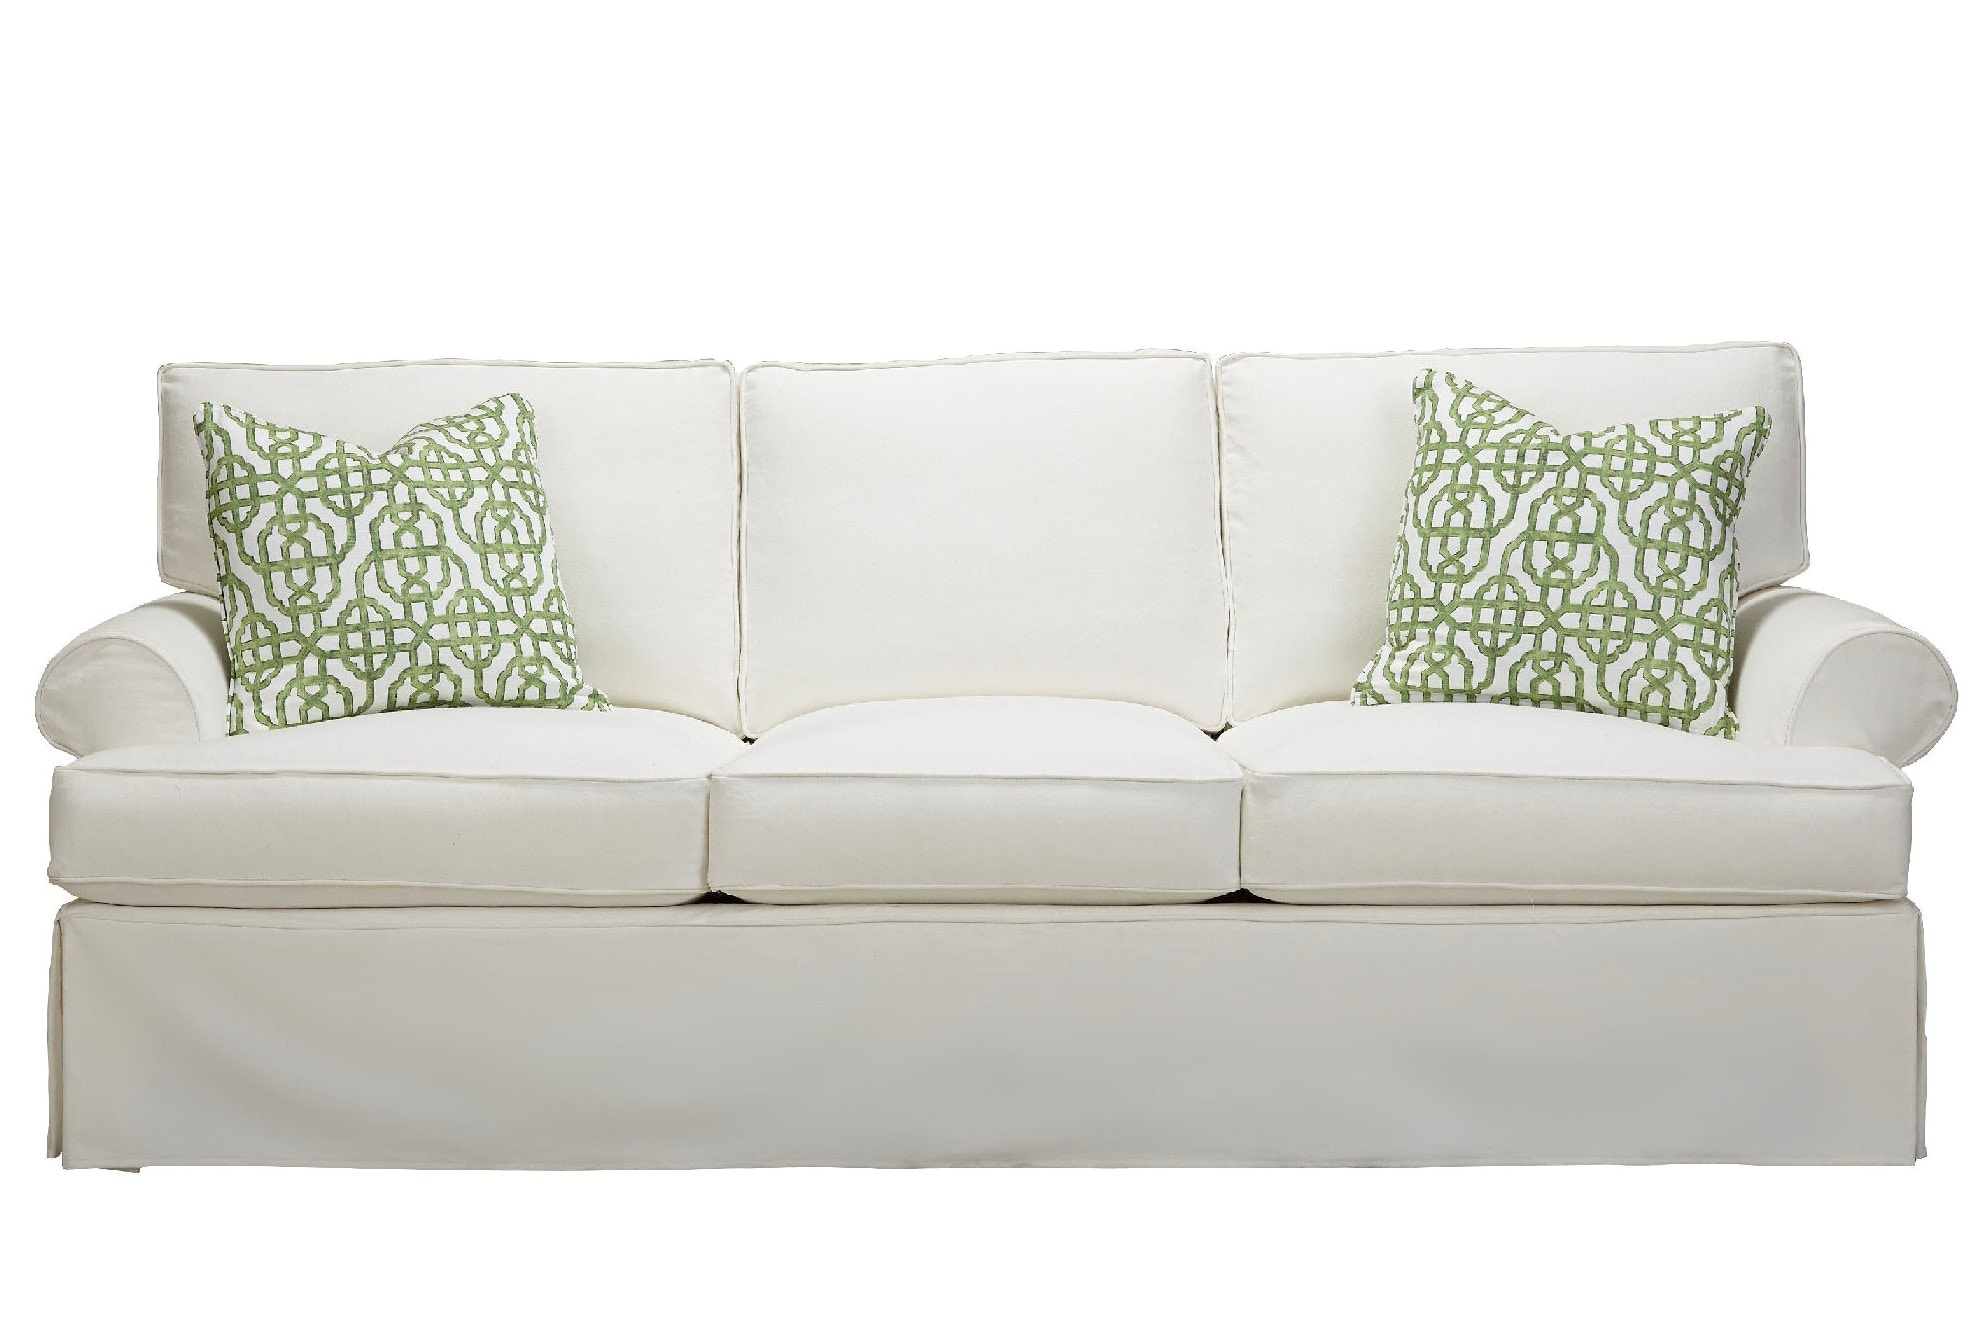 Merveilleux Stacy Select Sarah Slipcover Sofa 58371